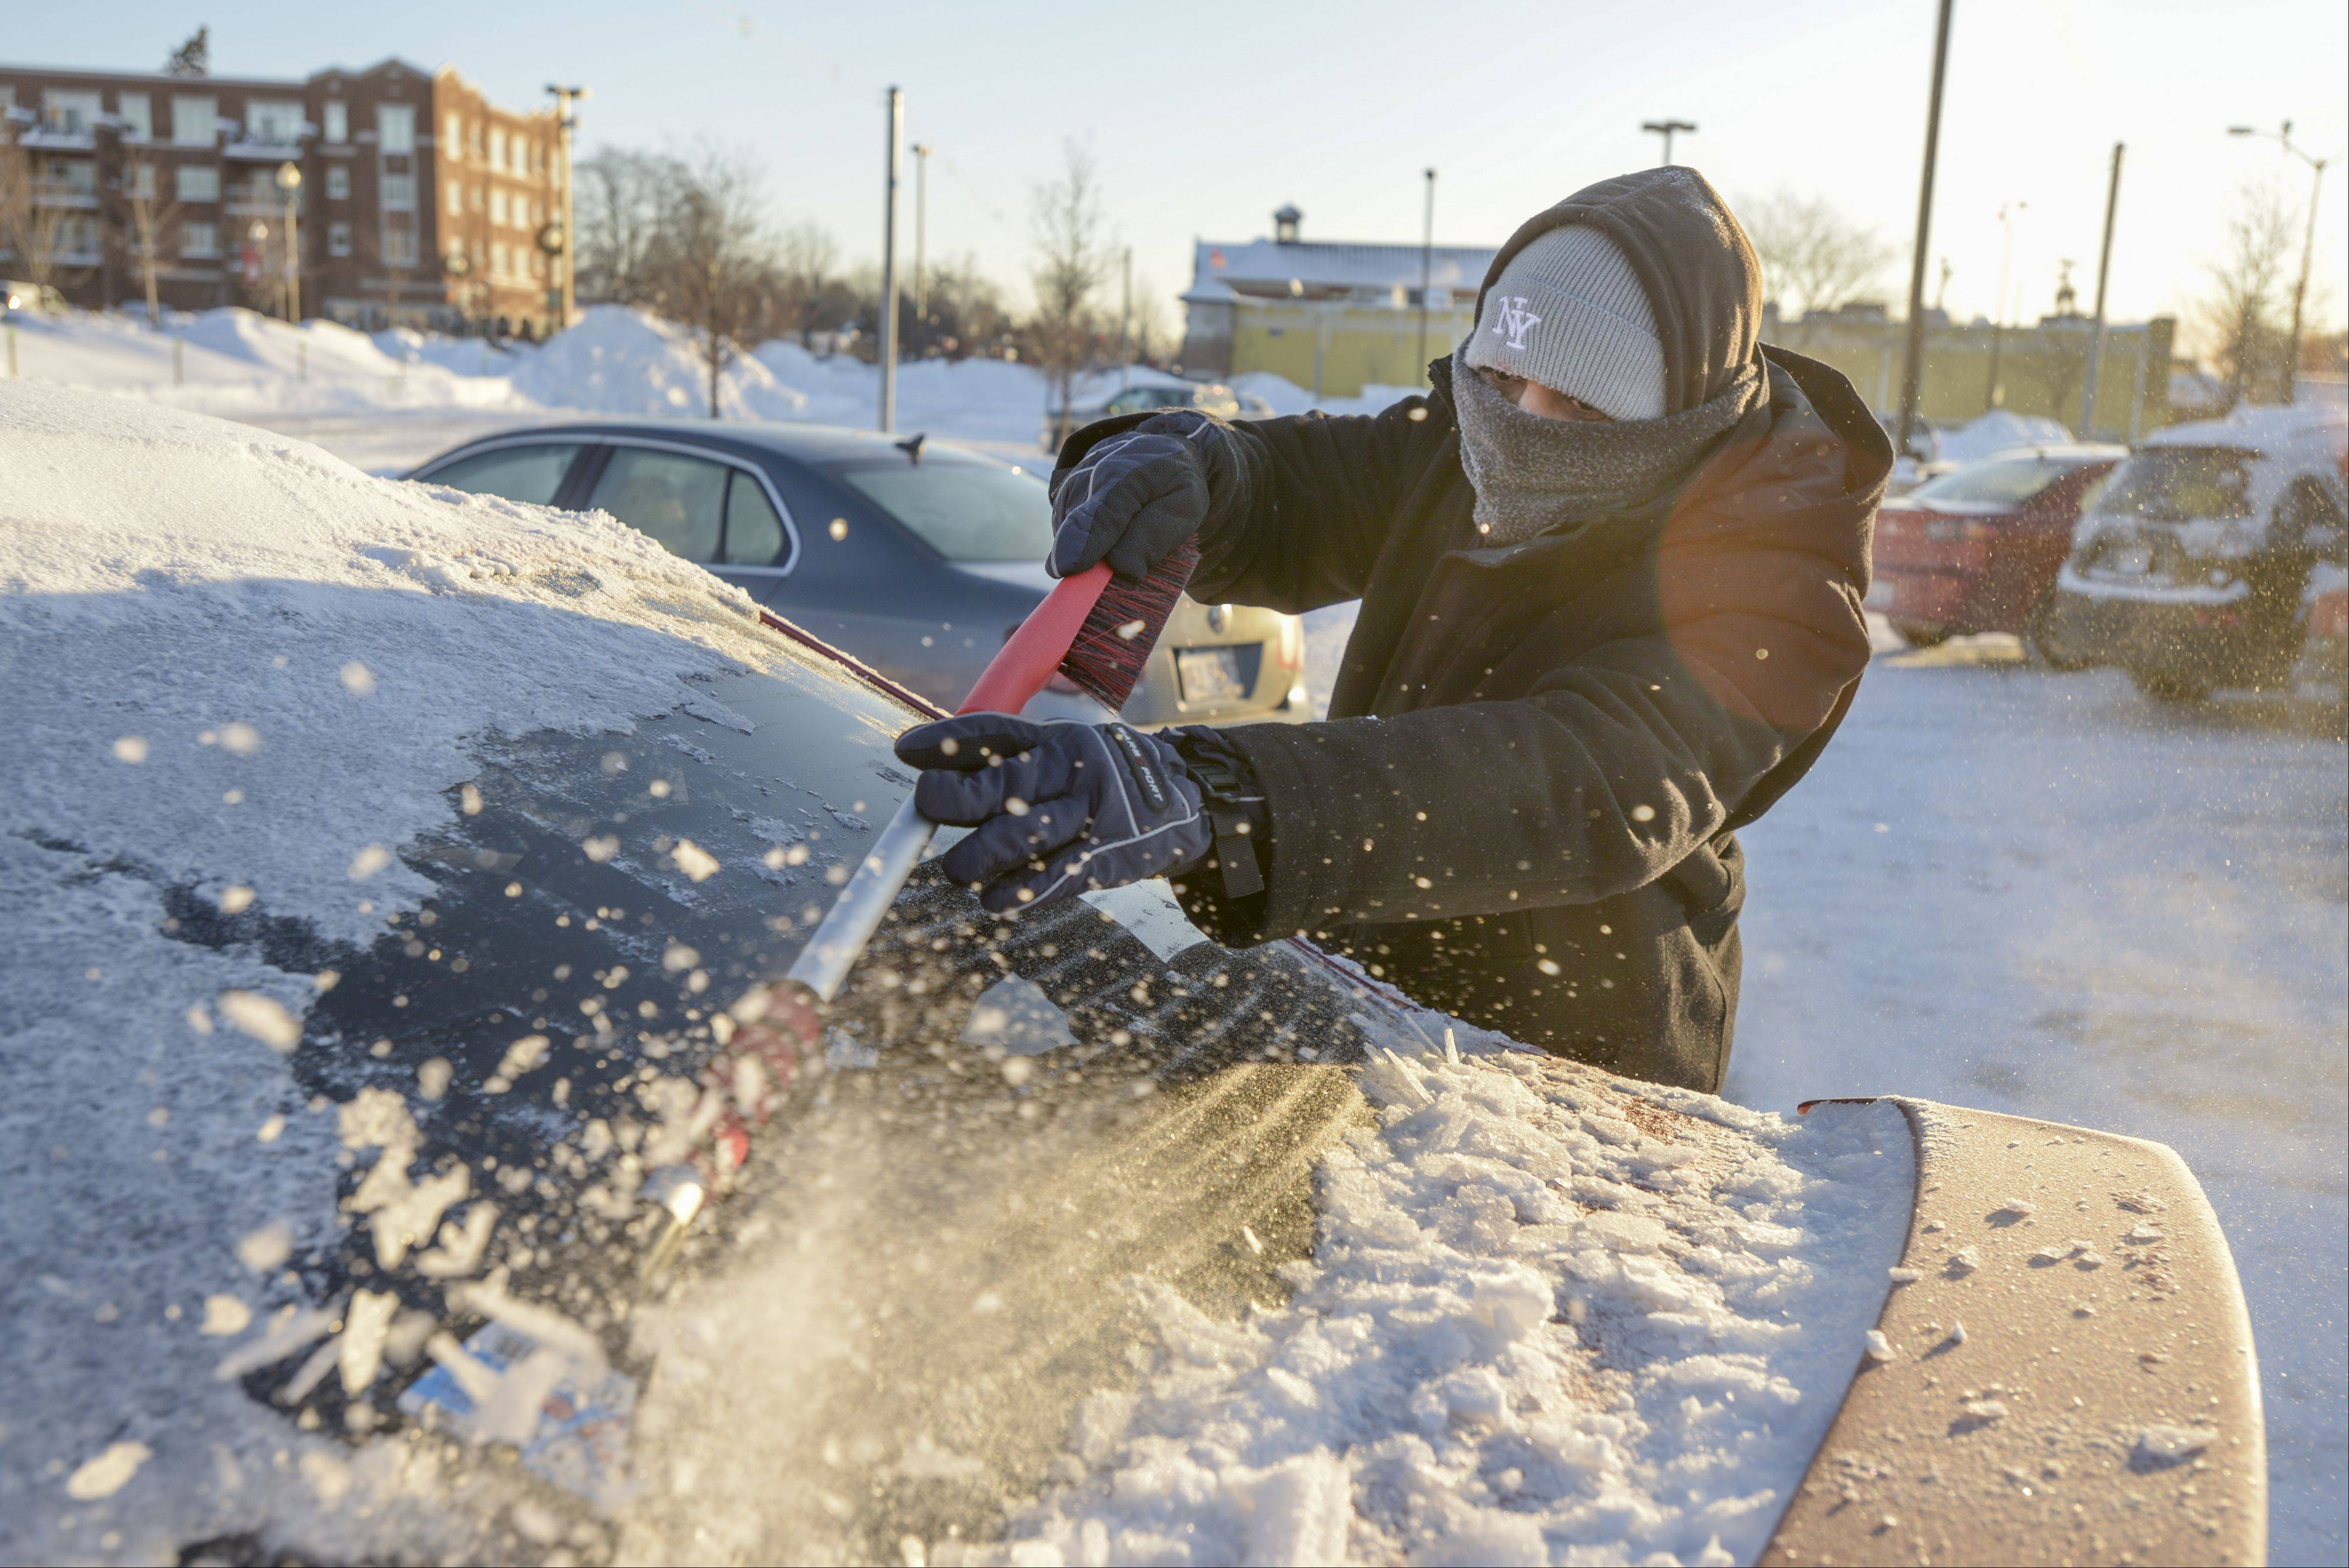 Viral Brahmbhatt of St. Charles clears the snow and ice off his car at the West Chicago train station after finding out via email that he could work from home today due to the record breaking extreme cold weather that has hit Chicago suburbs. That was a good thing for Brahmbhatt since his train was canceled due to the extreme cold.